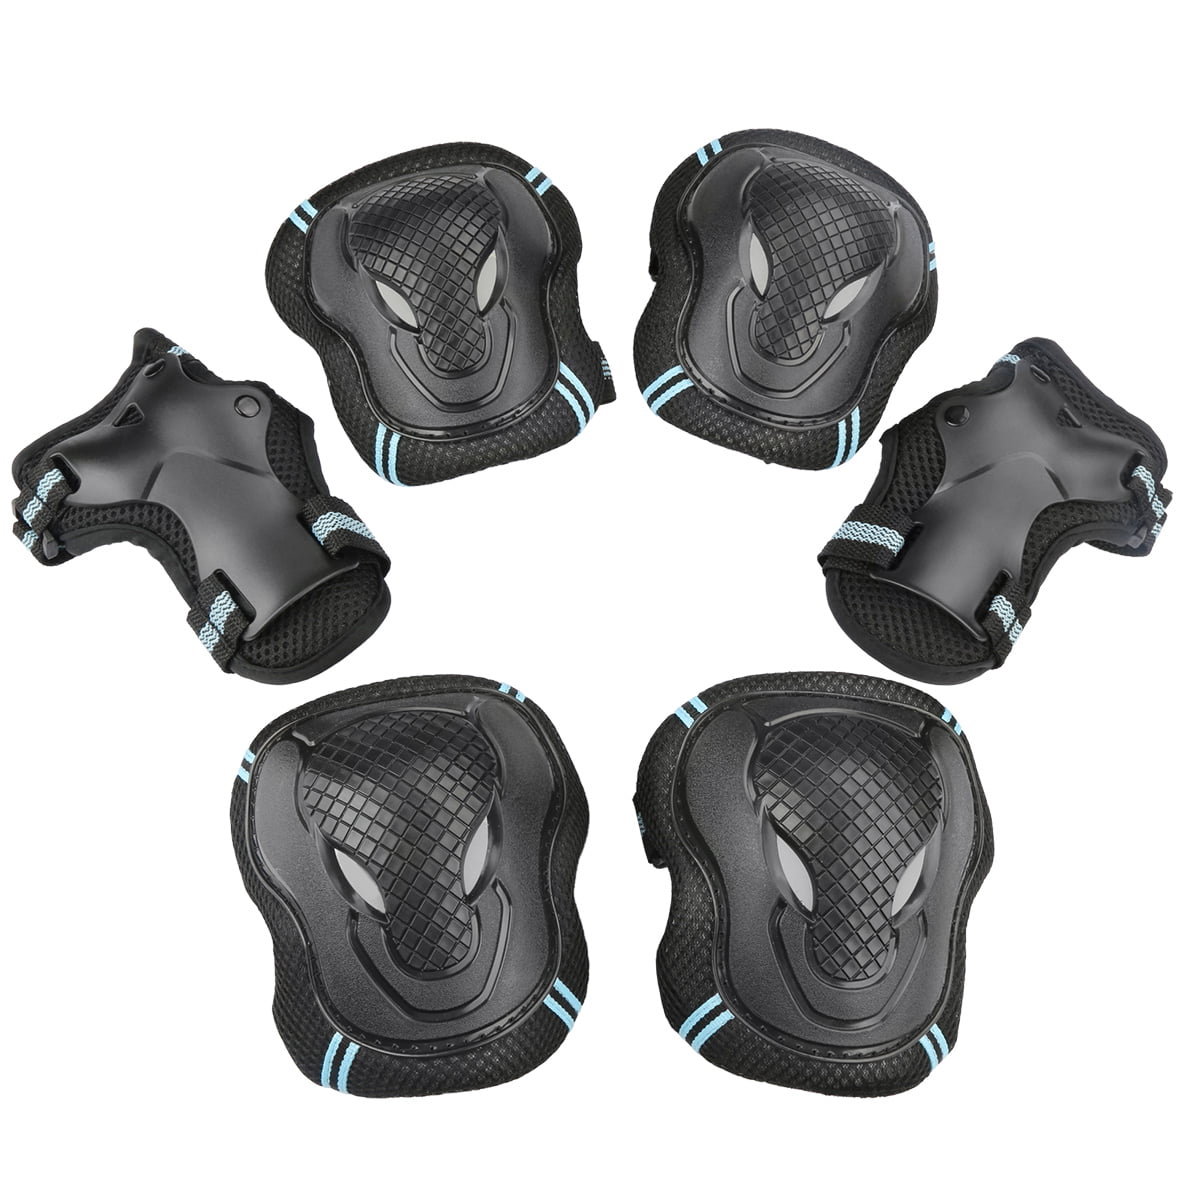 USCoco 6pcs Set Elbow Knee Wrist Protective Safety Gear Pad Guard for Child Kids Roller Skateboard Roller Blading by USCOCO